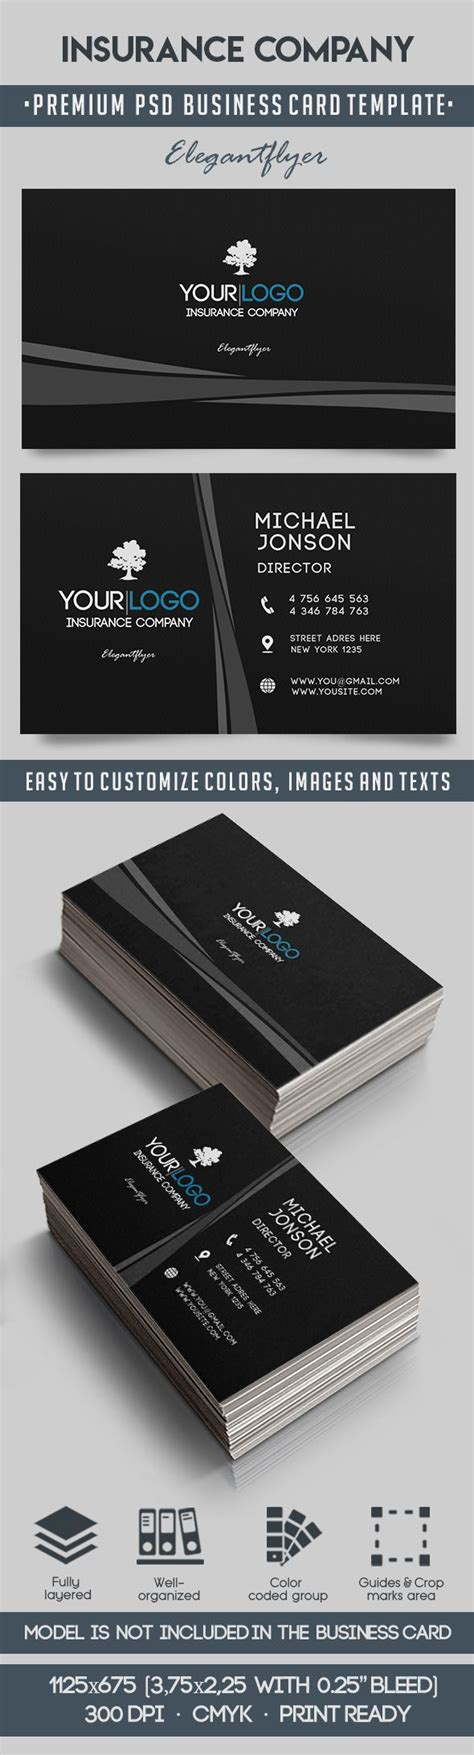 insurance business cards templates business card for insurance company by elegantflyer